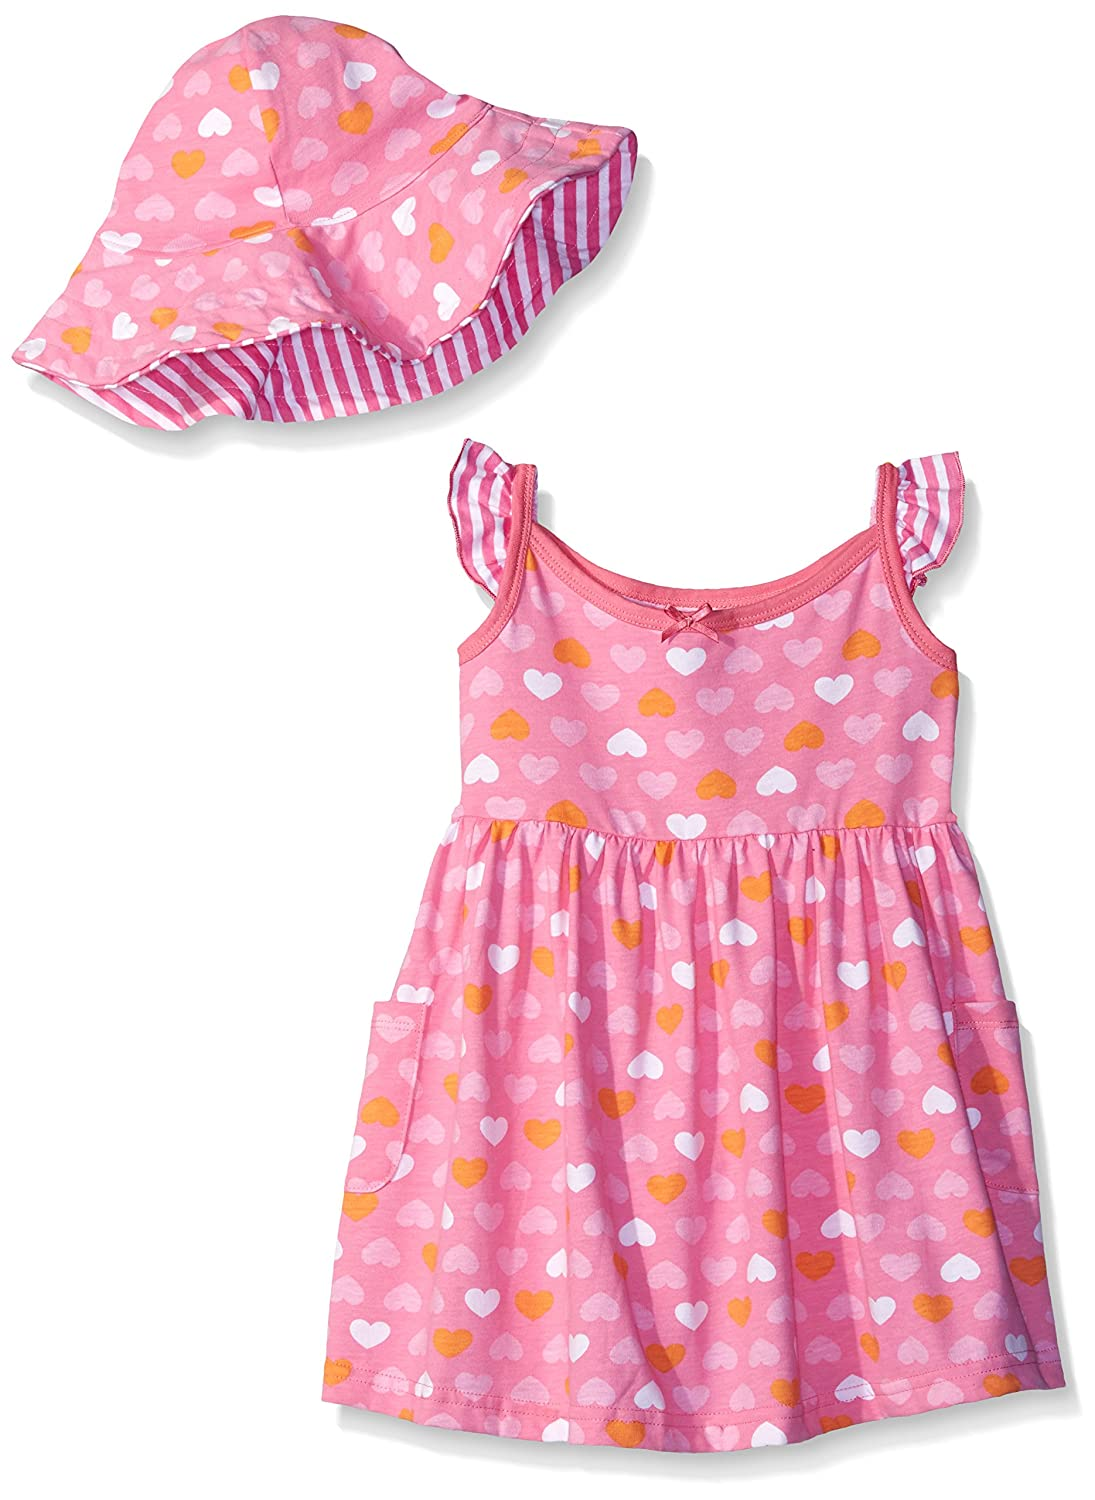 Gerber Baby Girls' Toddler Two-Piece Sundress and Hat Set Gerber Children' s Apparel